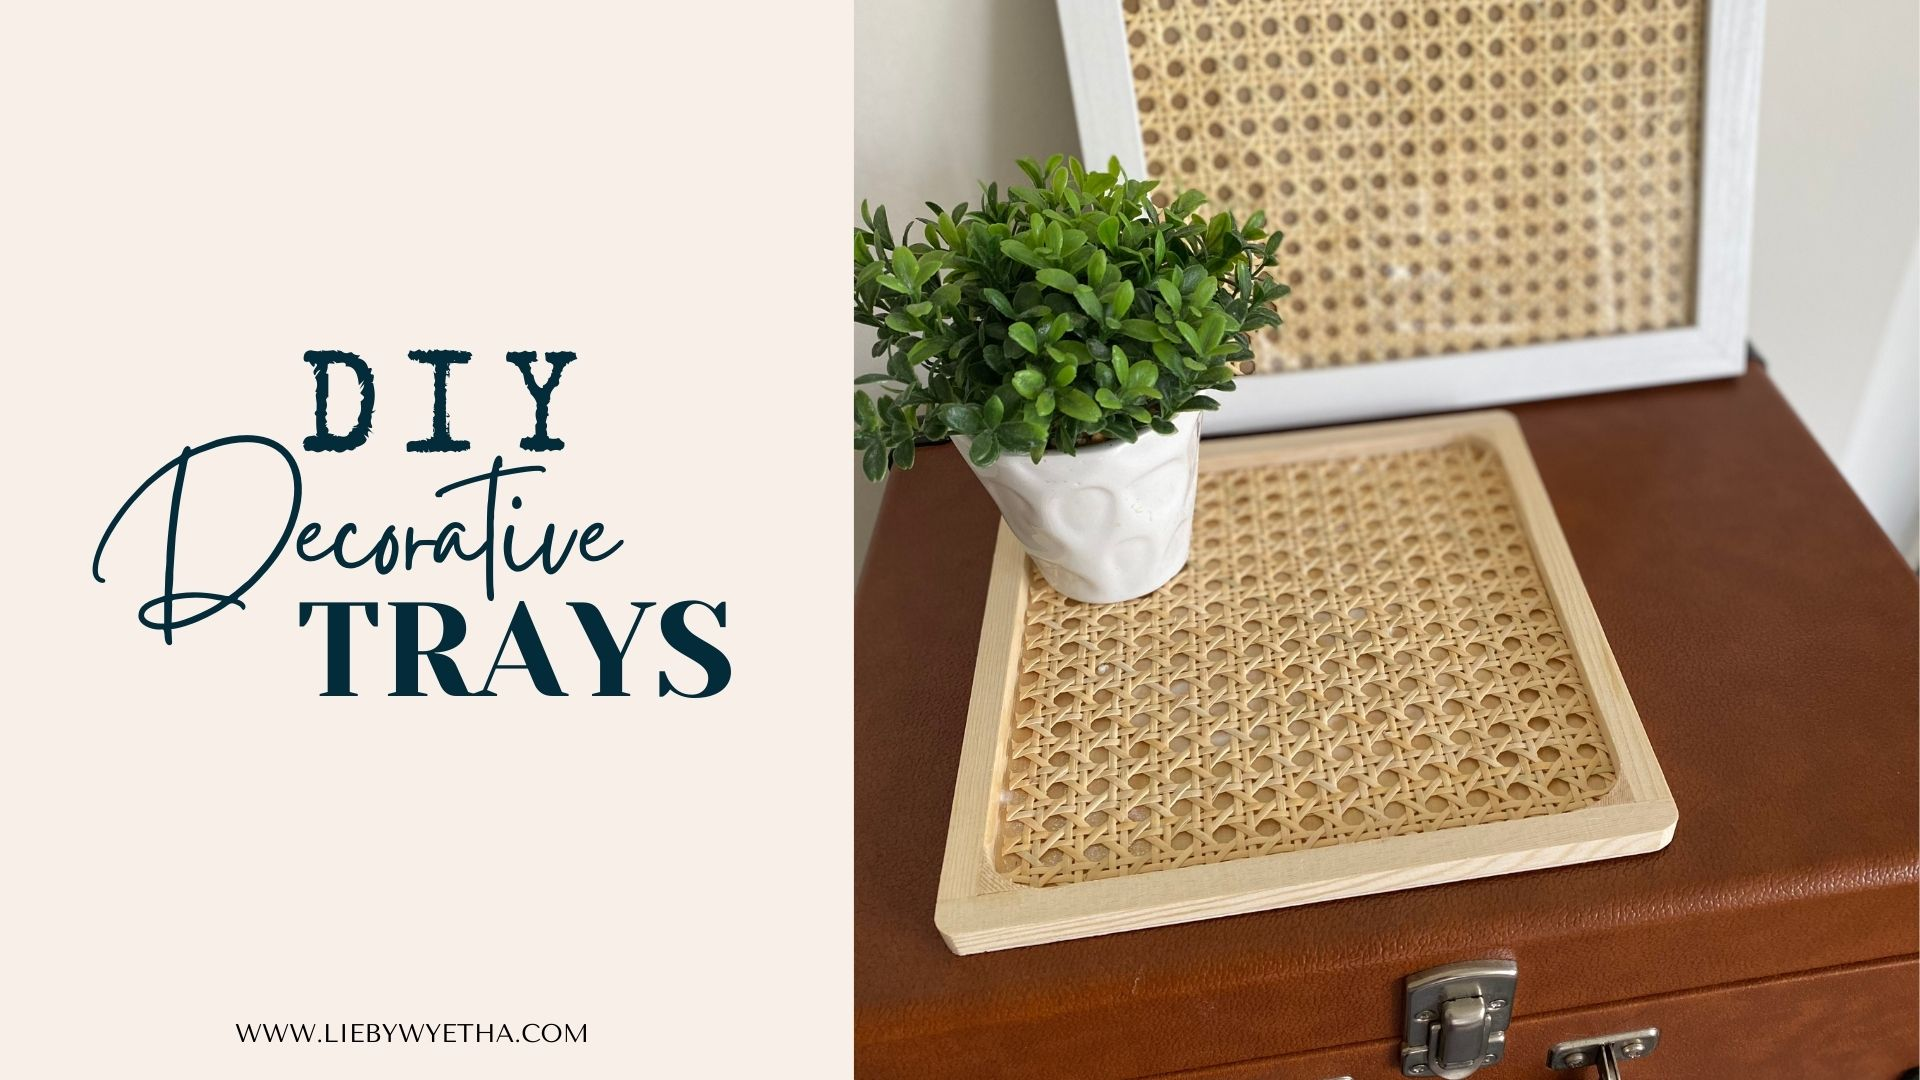 DIY Decorative Trays Made with Cane Webbing!